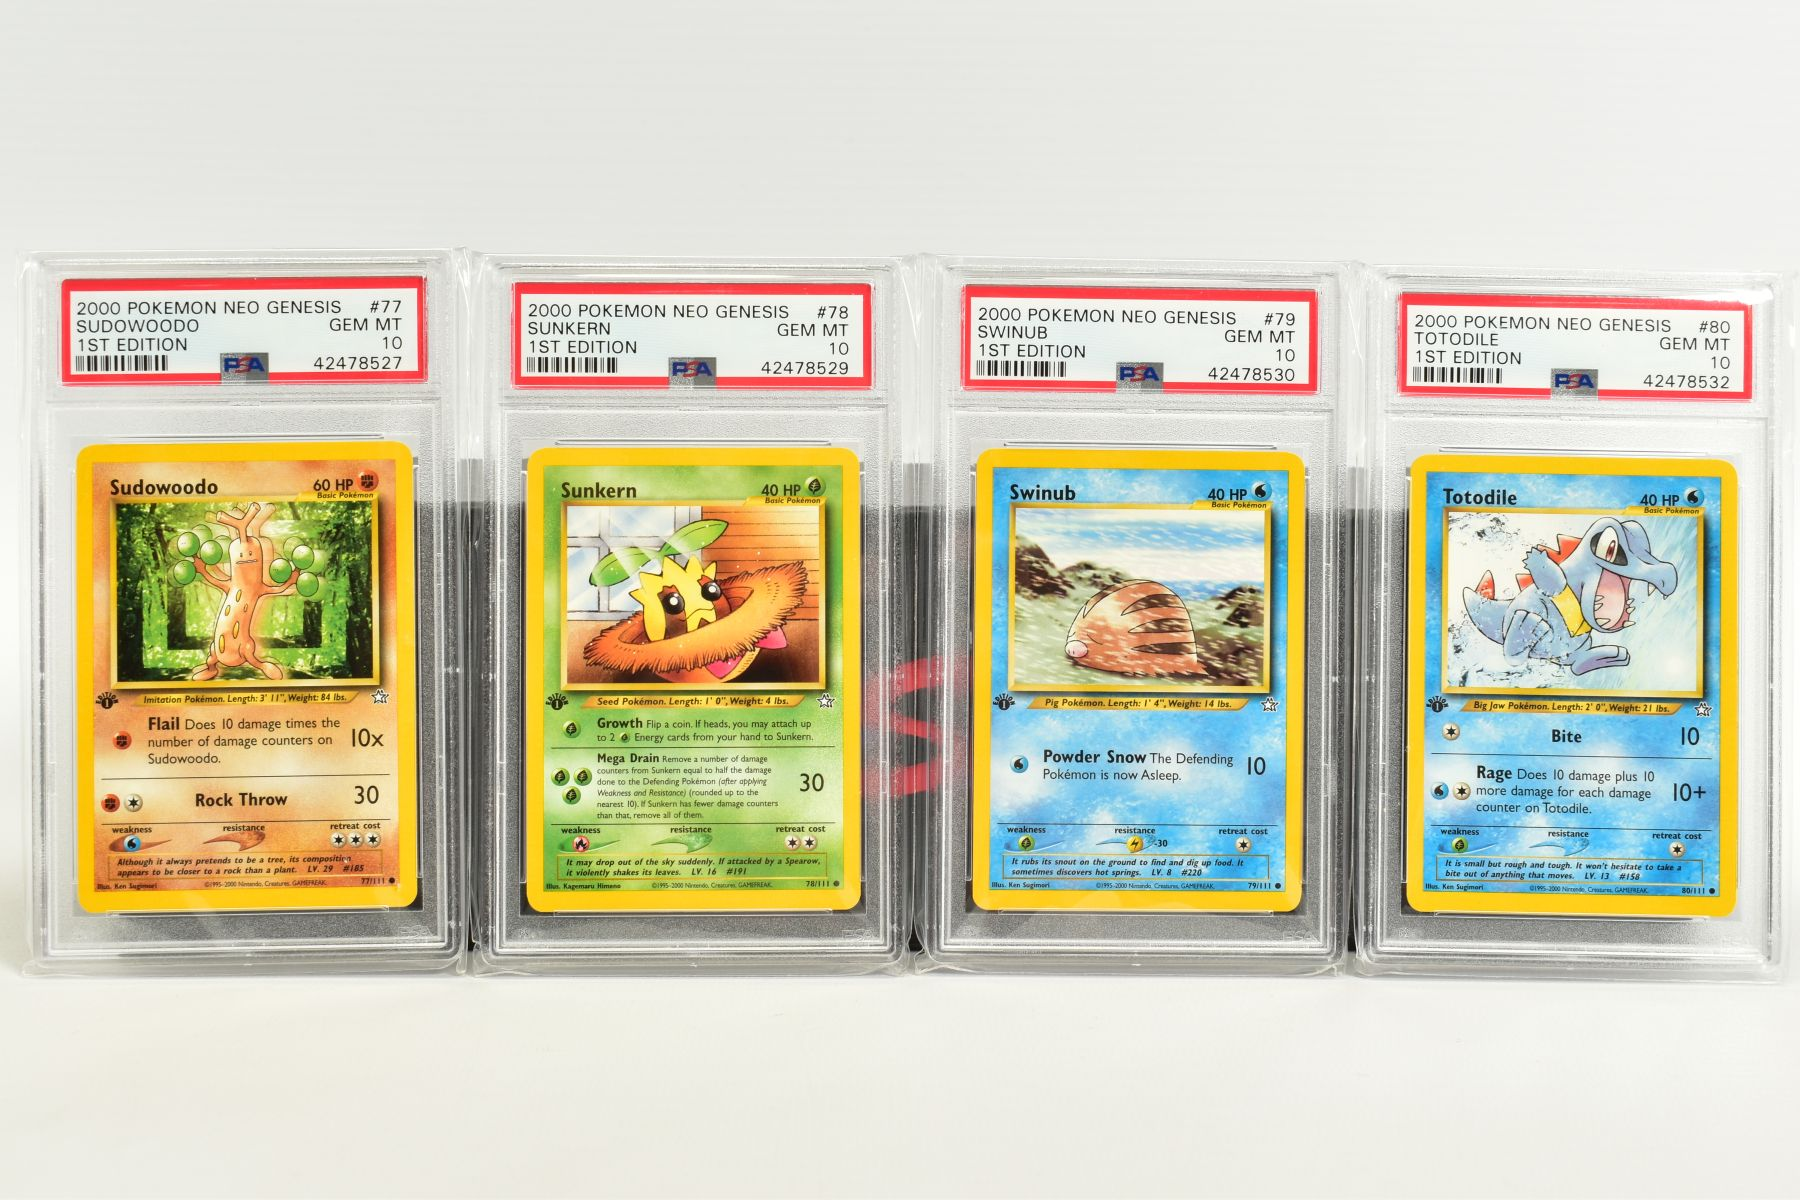 A QUANTITY OF PSA GRADED POKEMON 1ST EDITION NEO GENESIS SET CARDS, all are graded GEM MINT 10 and - Image 16 of 24